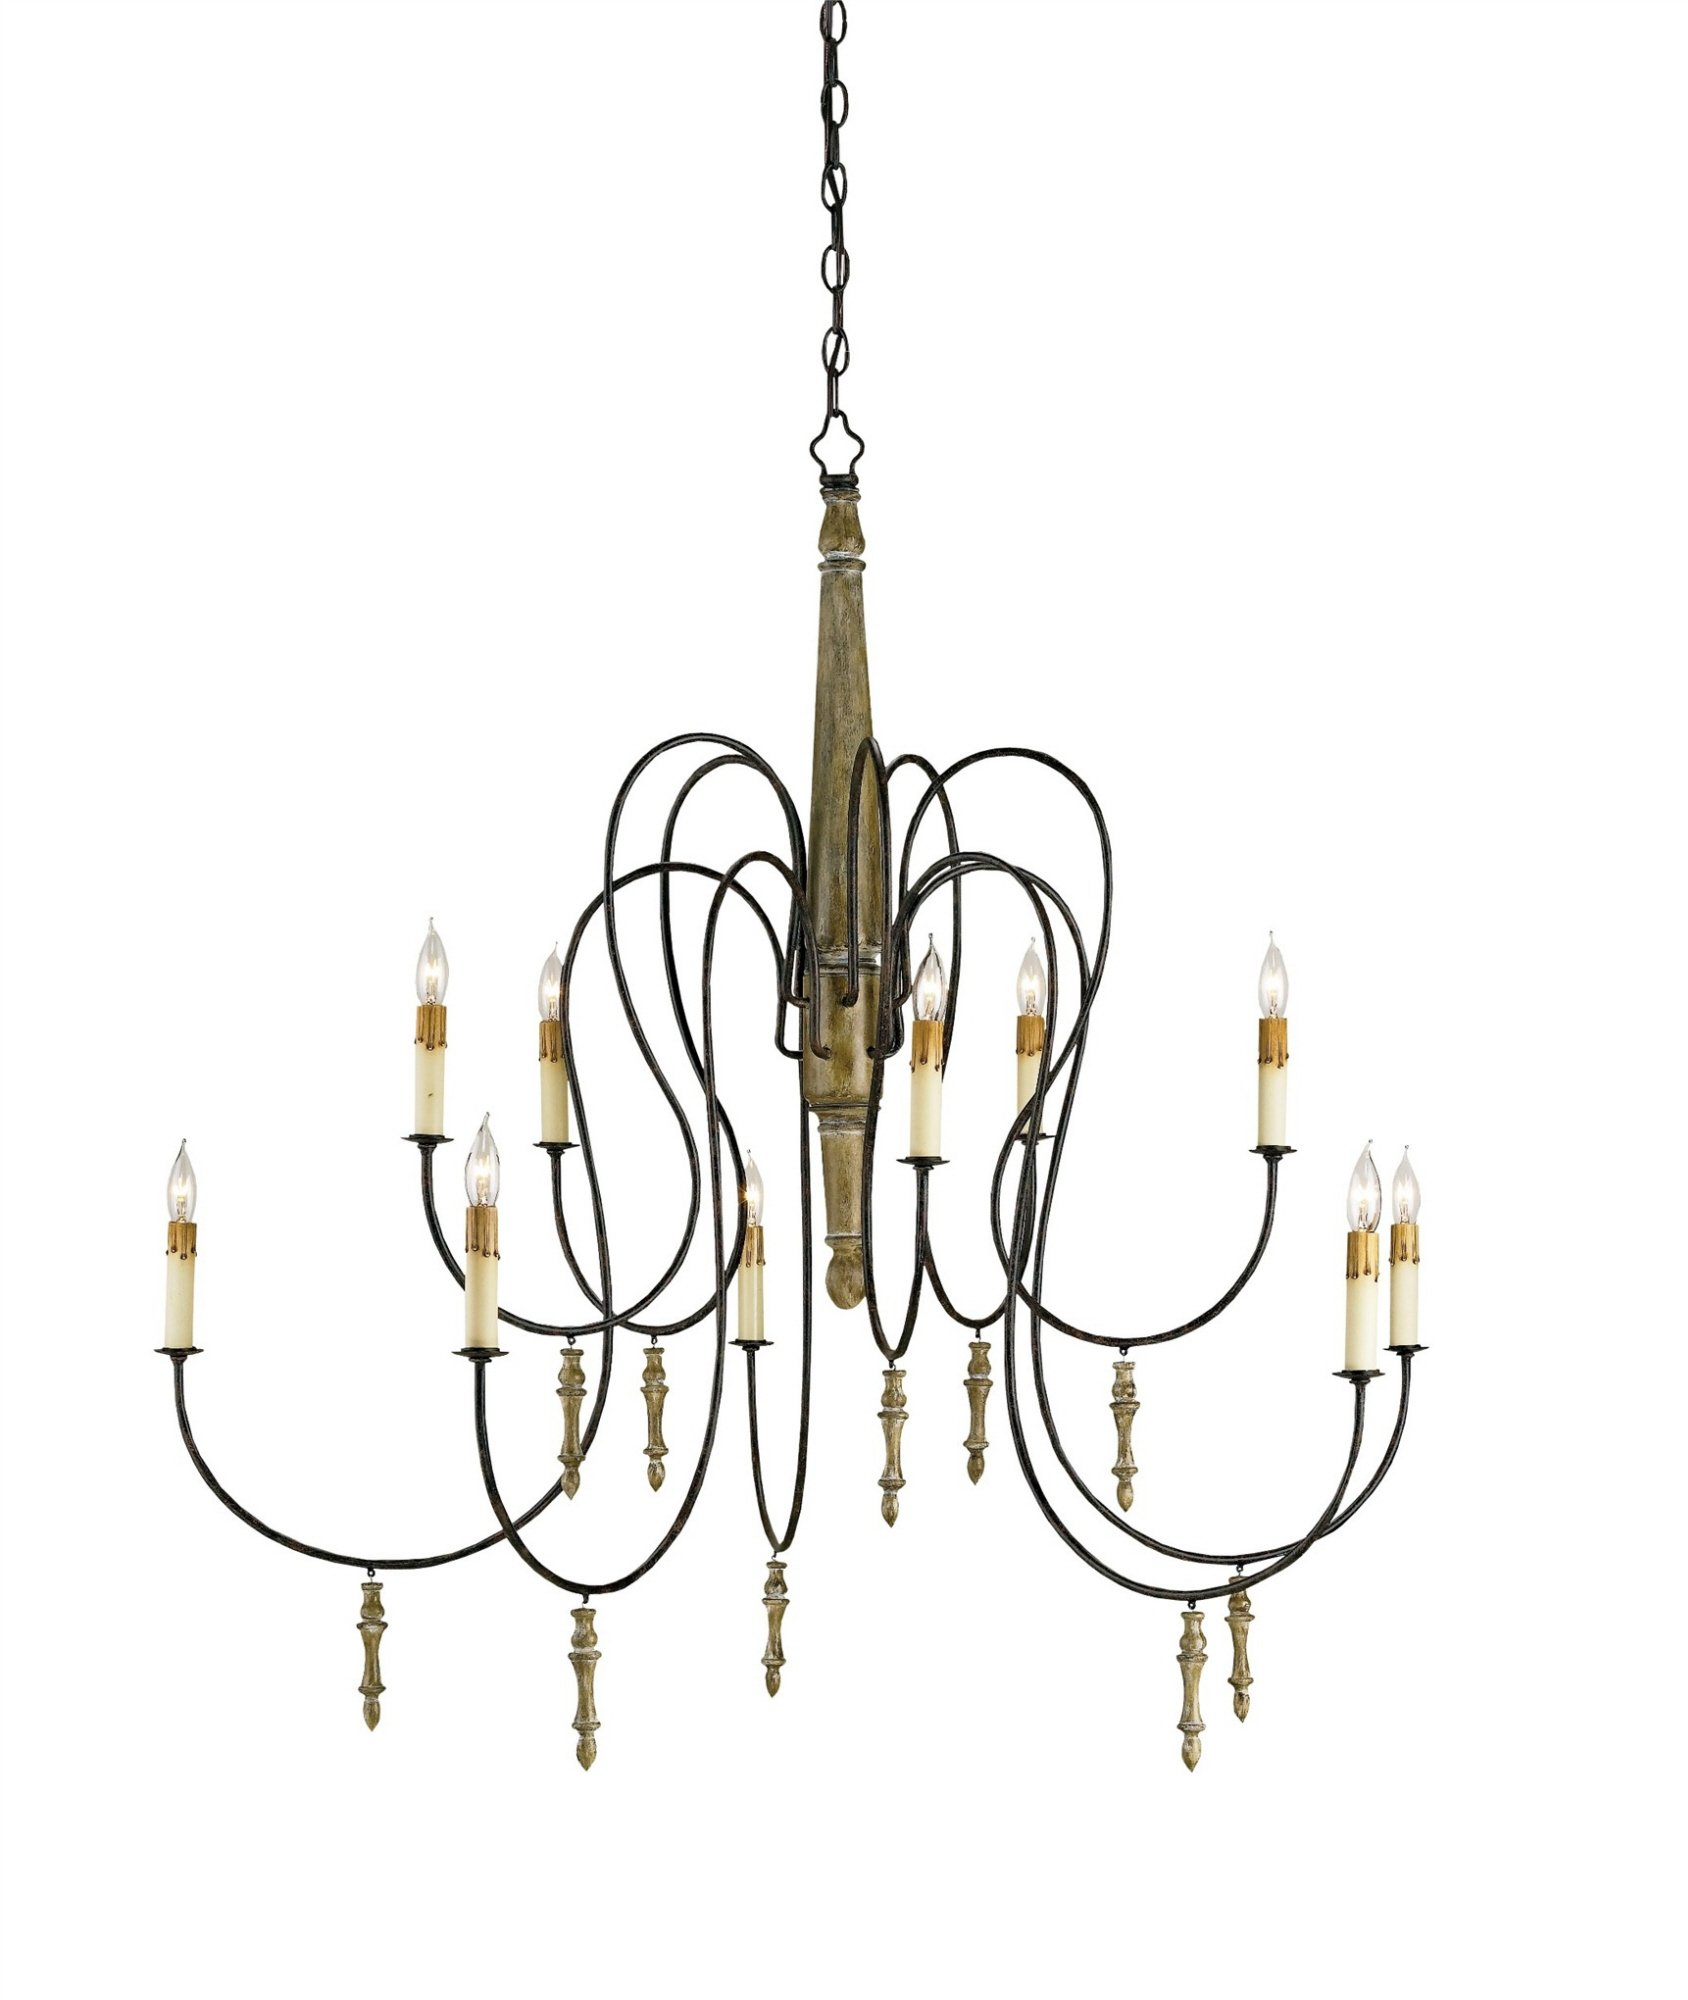 Currey & Company Large Rouleau Chandelier